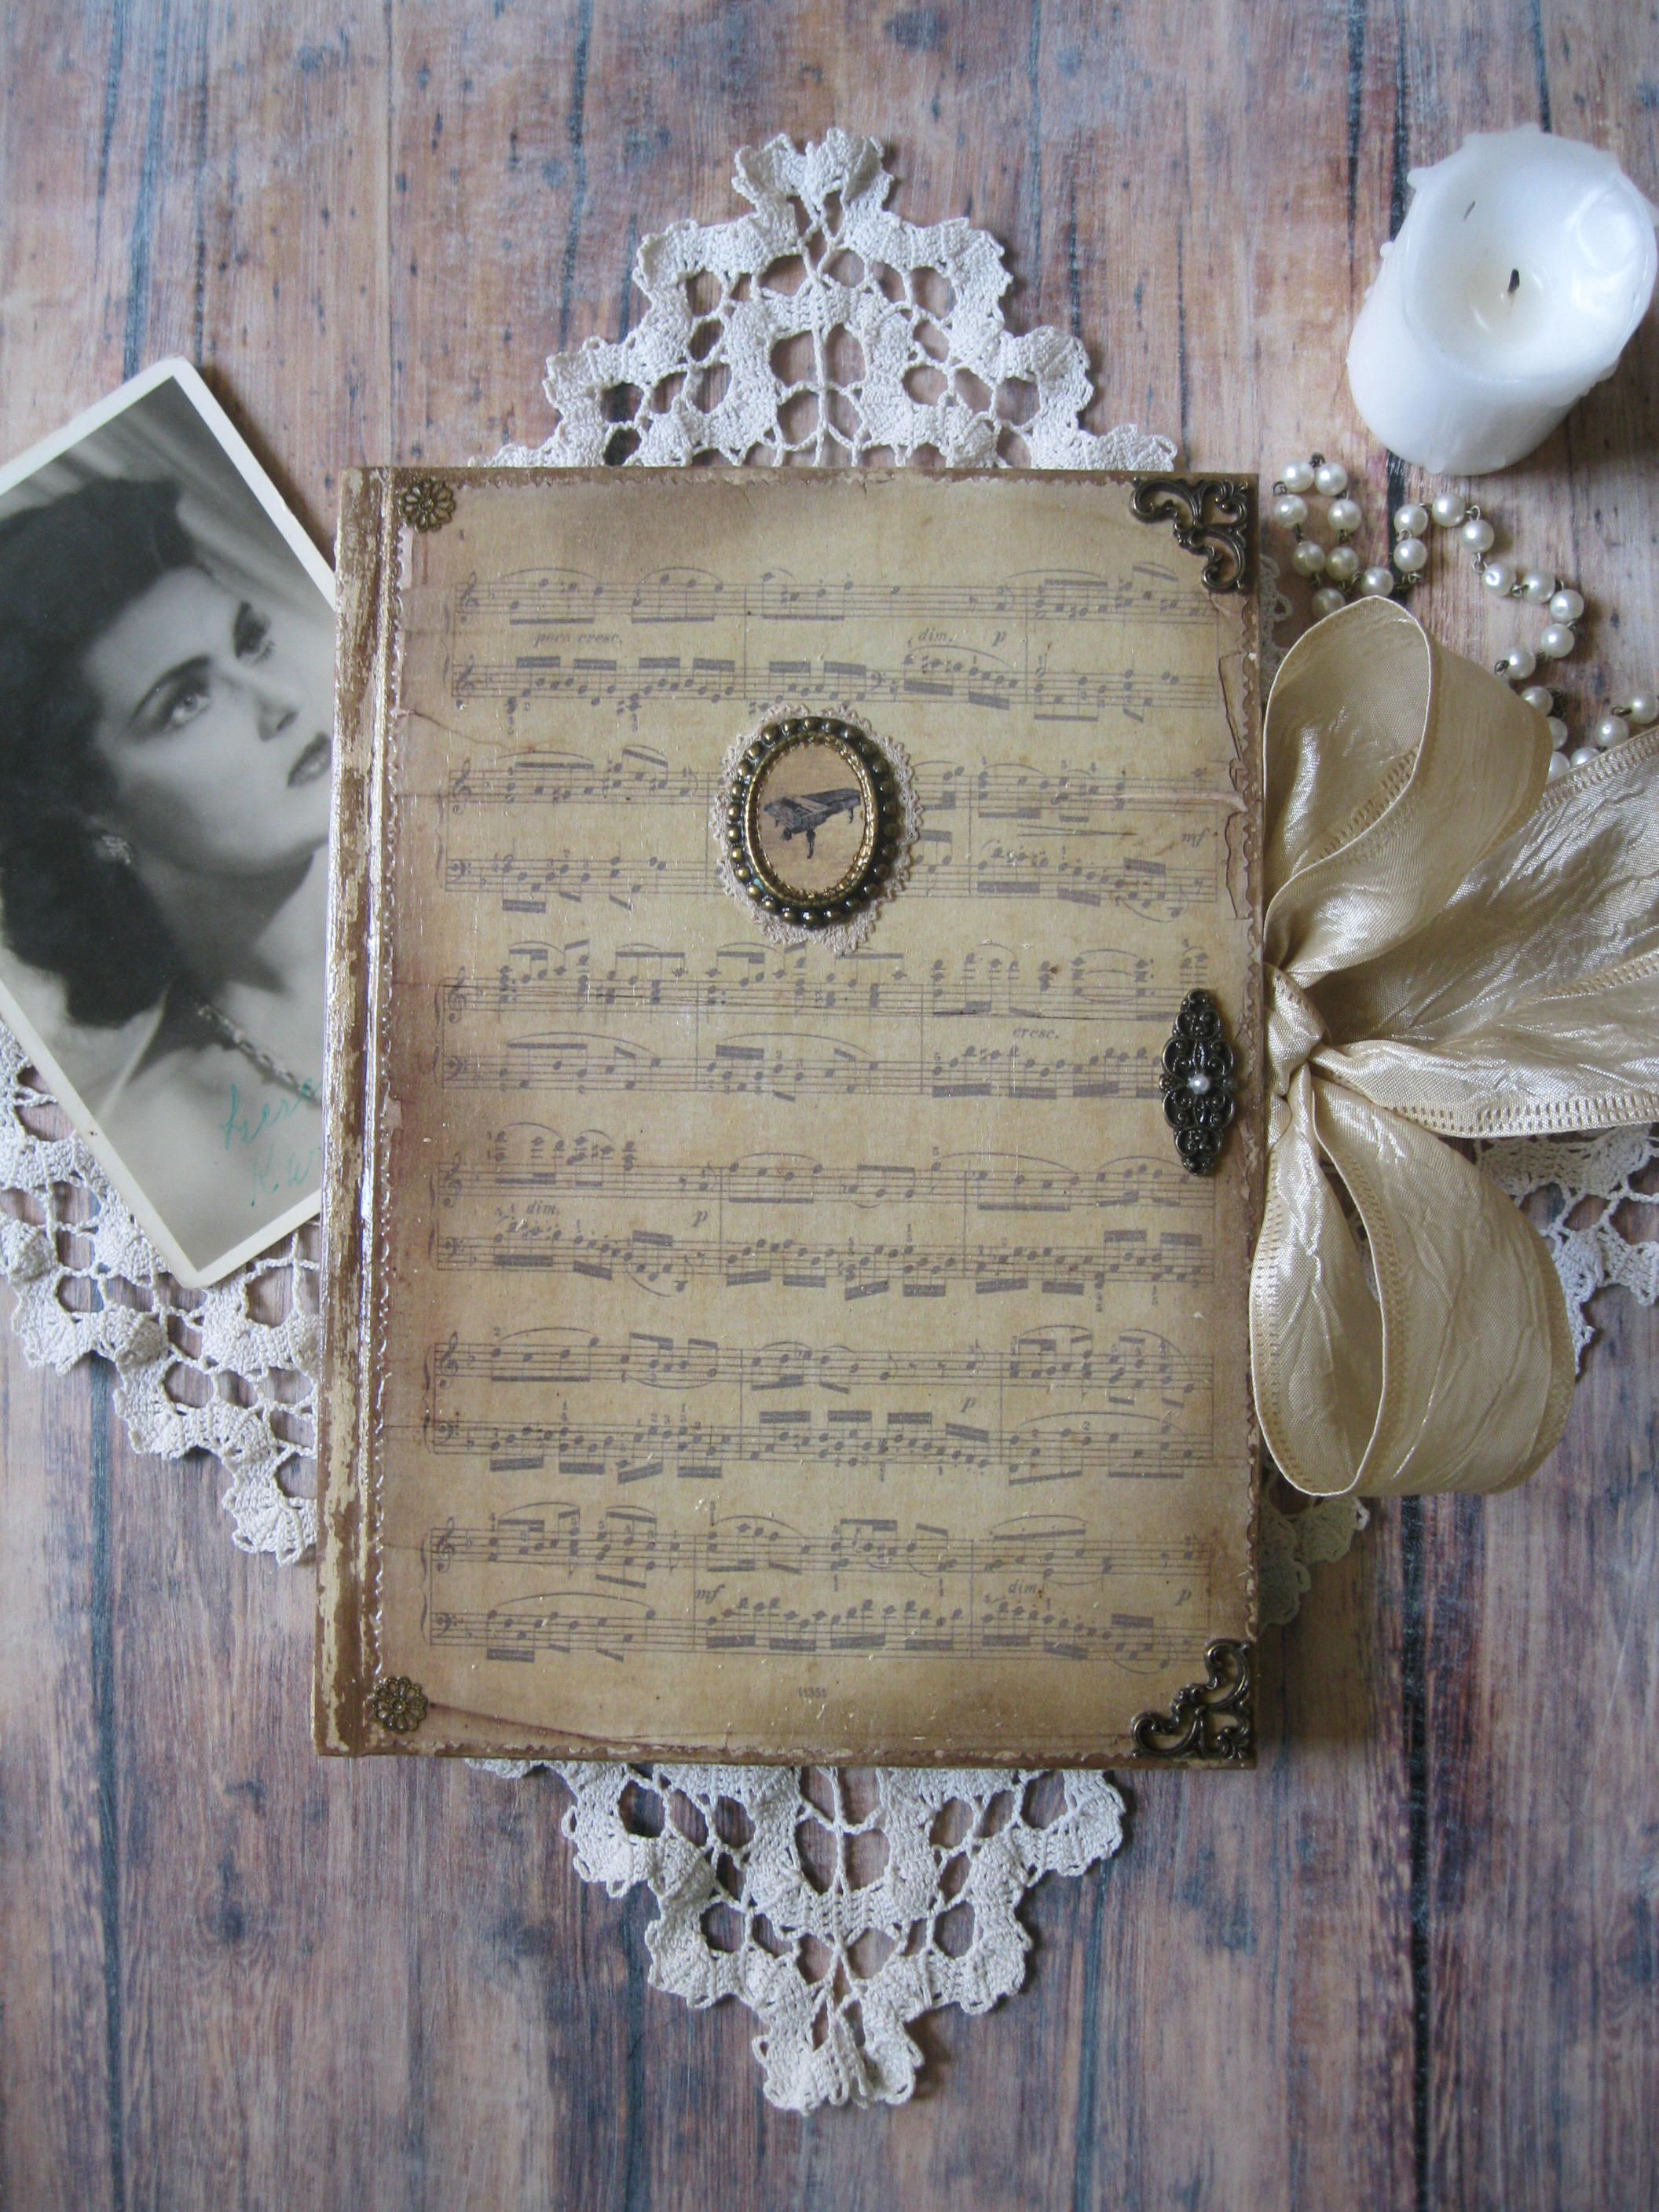 Old Music Diary Journal Notebook Old Sheet Music Vintage Vintage Journal Old Sheet Music Shabby Chic Journal